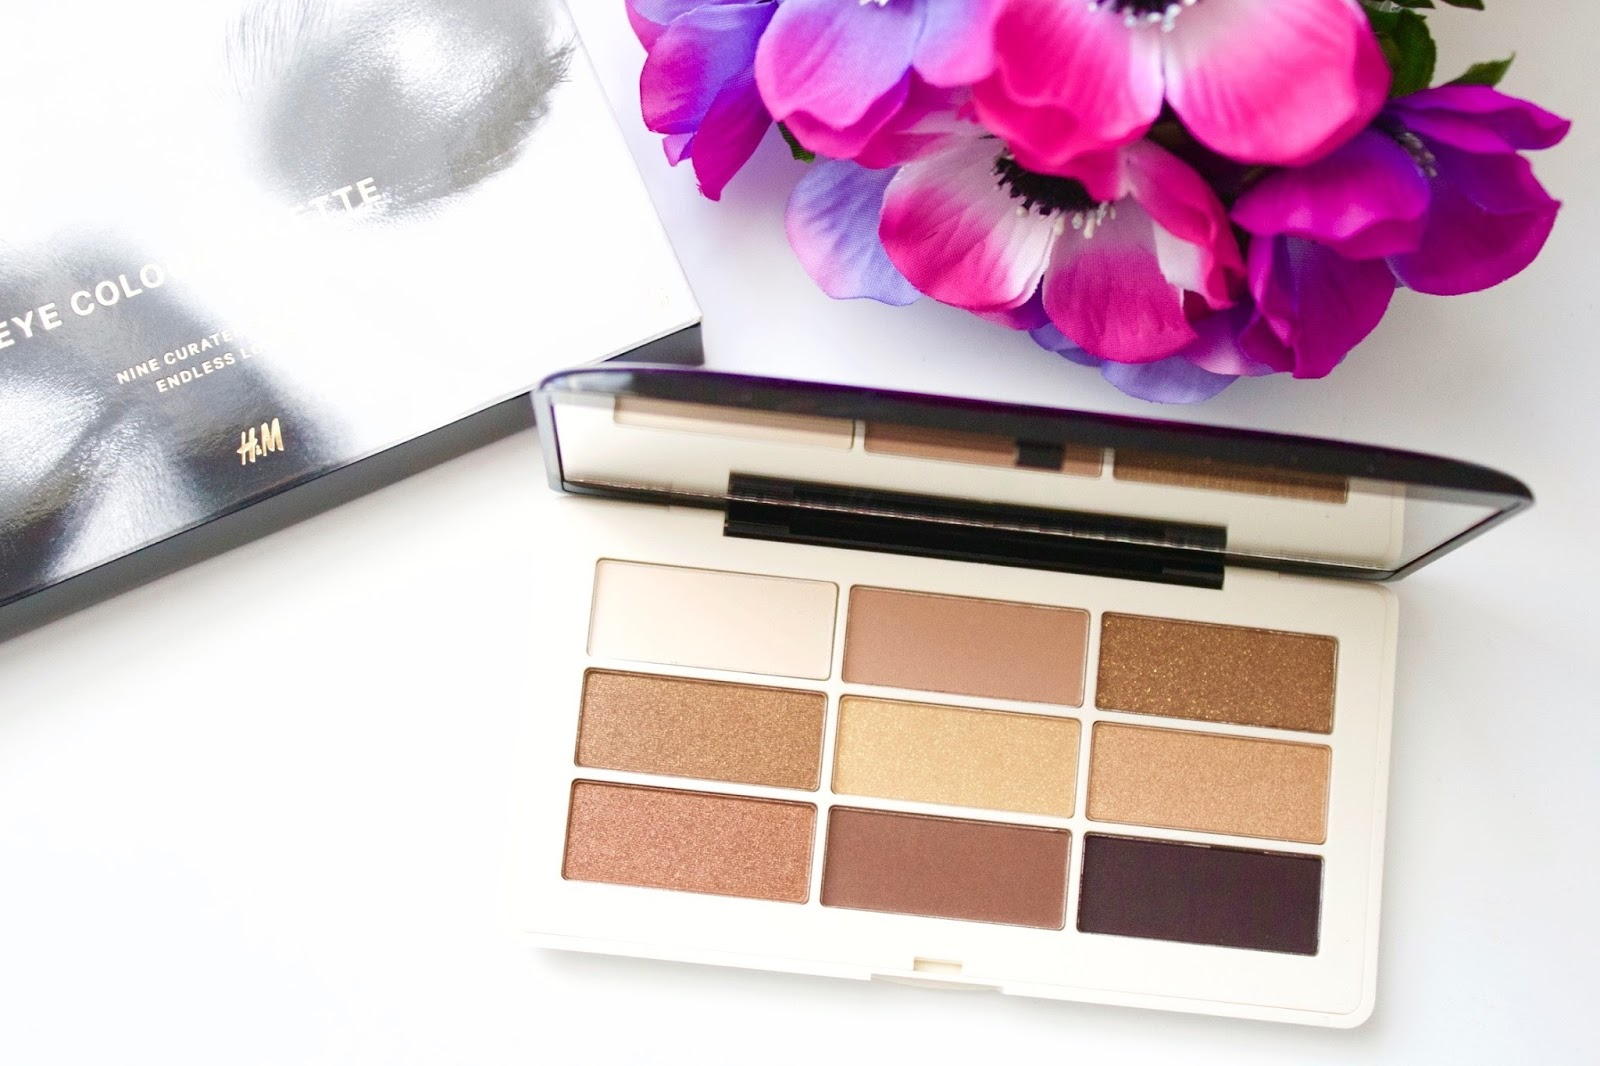 H&M Ready, Set, Glow Palette